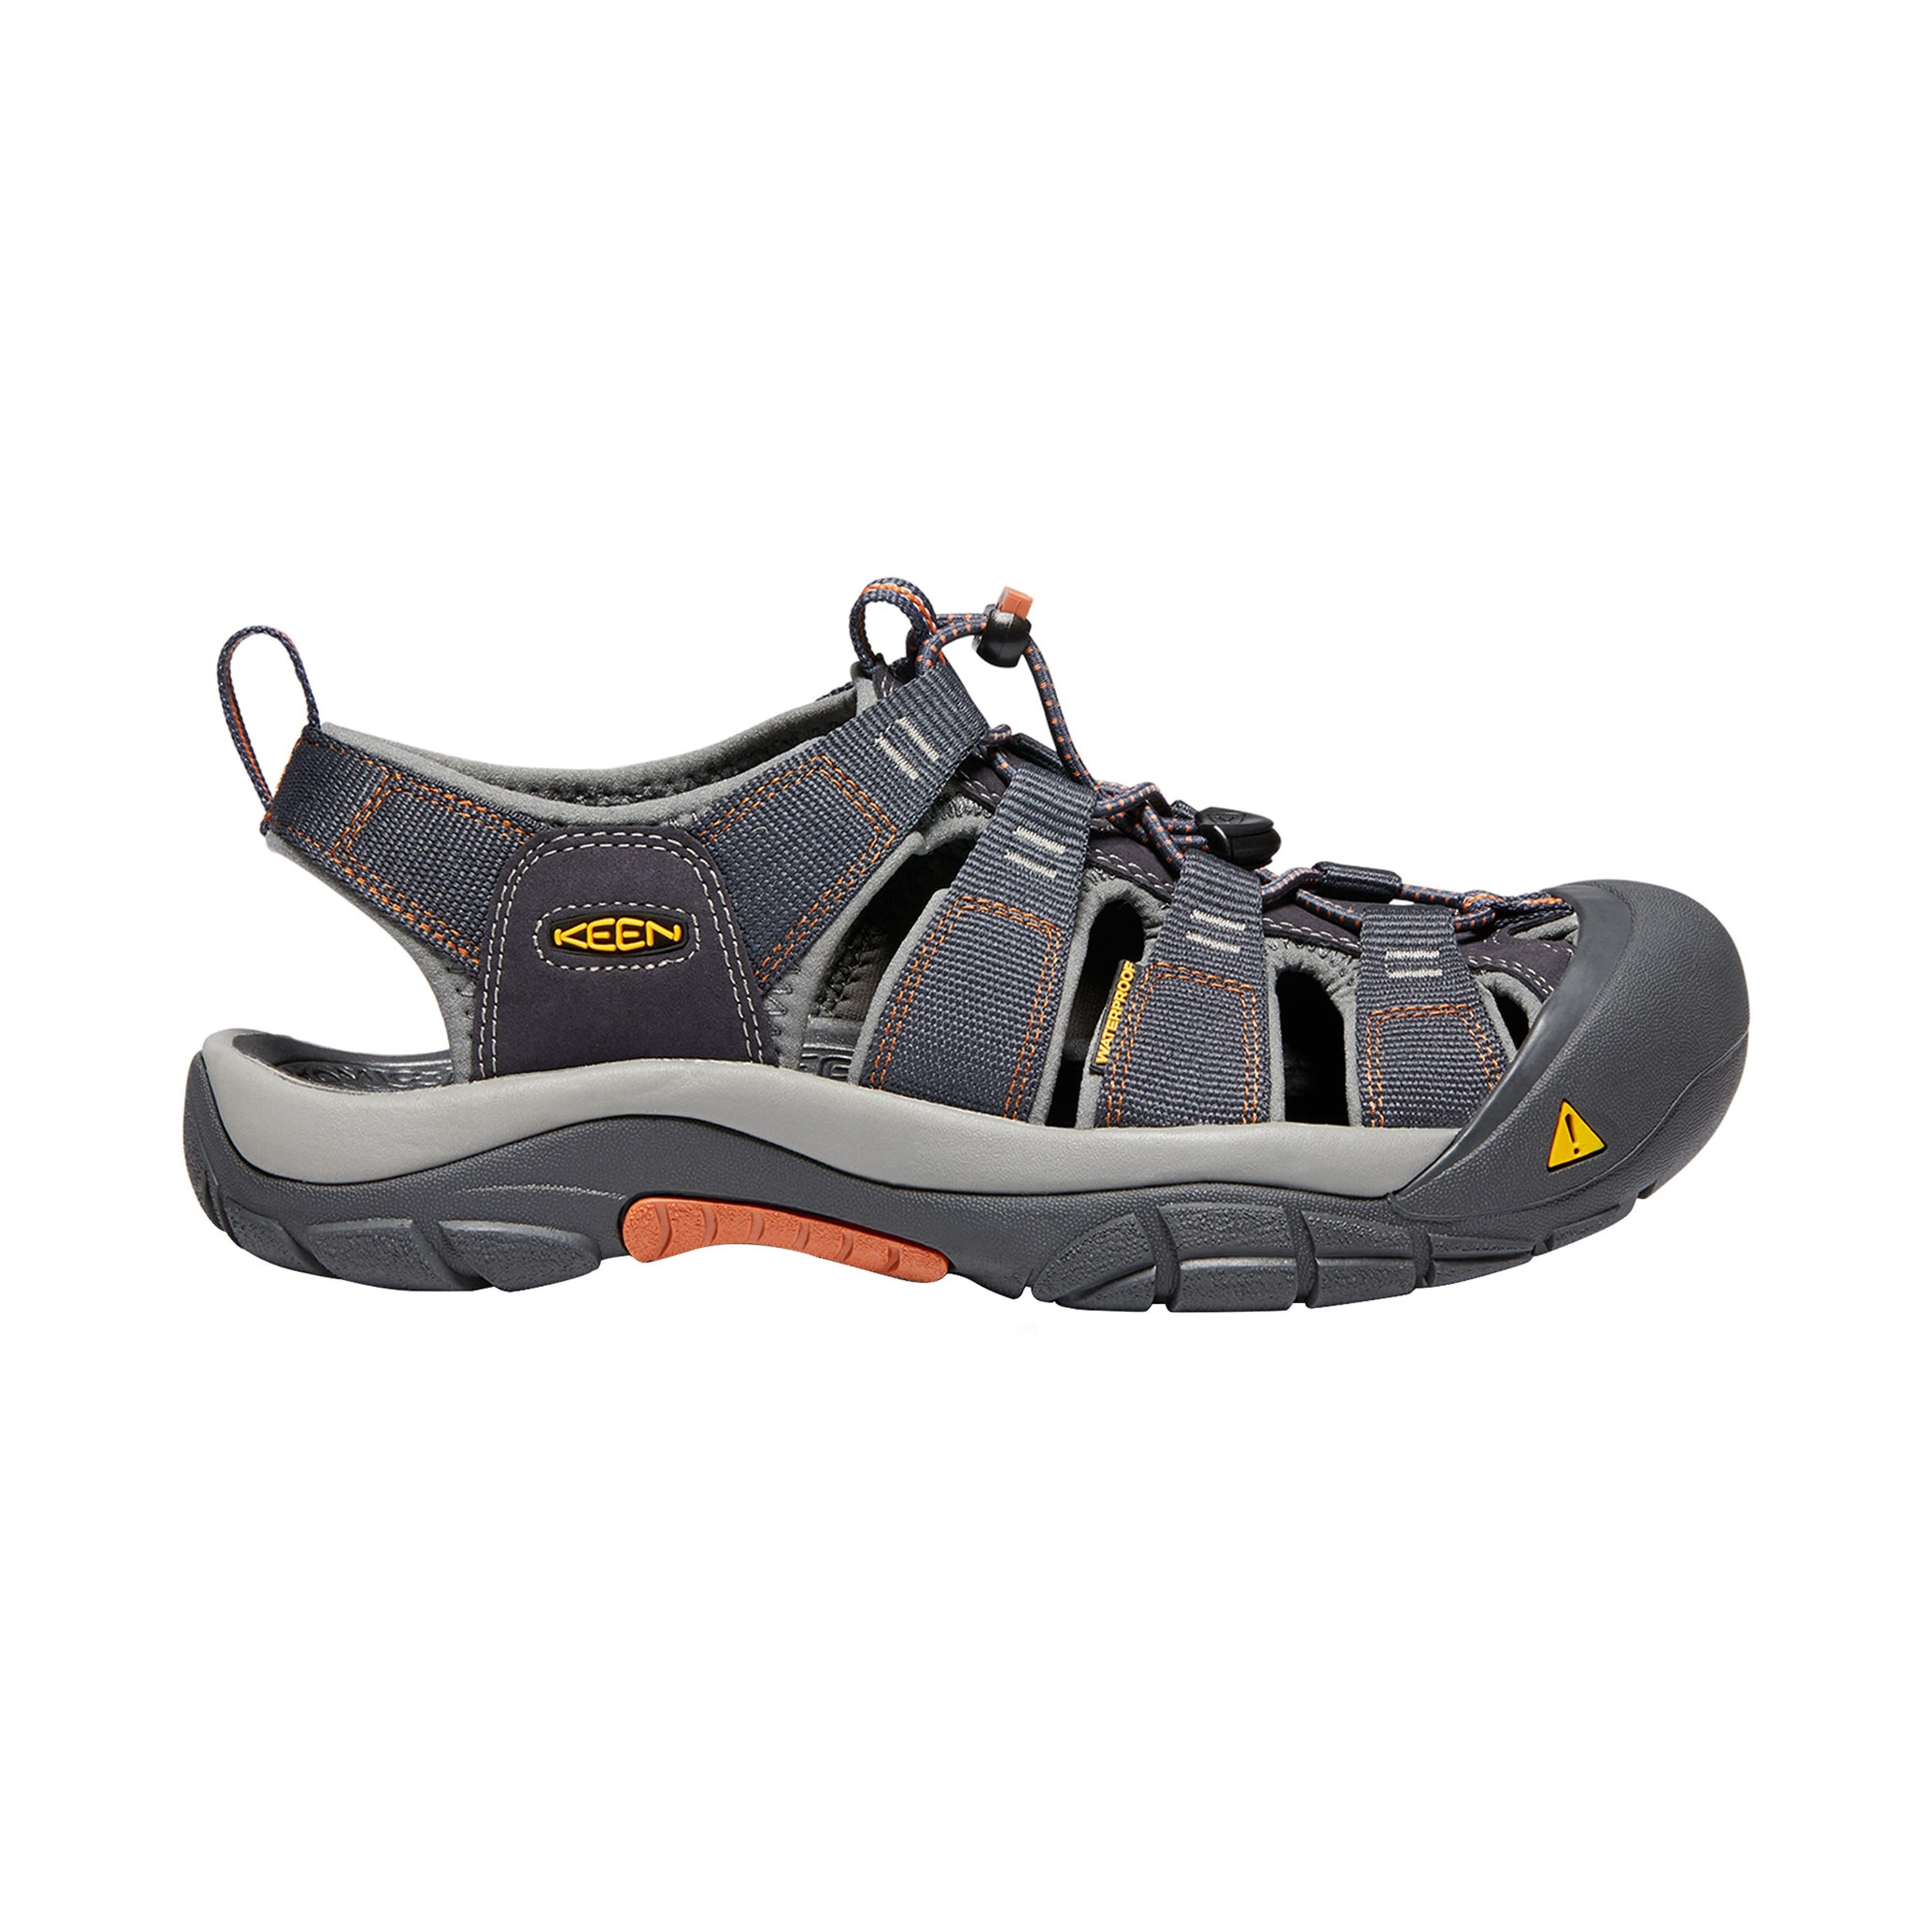 c7f3ed4c6a34 Keen Newport H2 Men s Sandals - Brindle Orion Blue